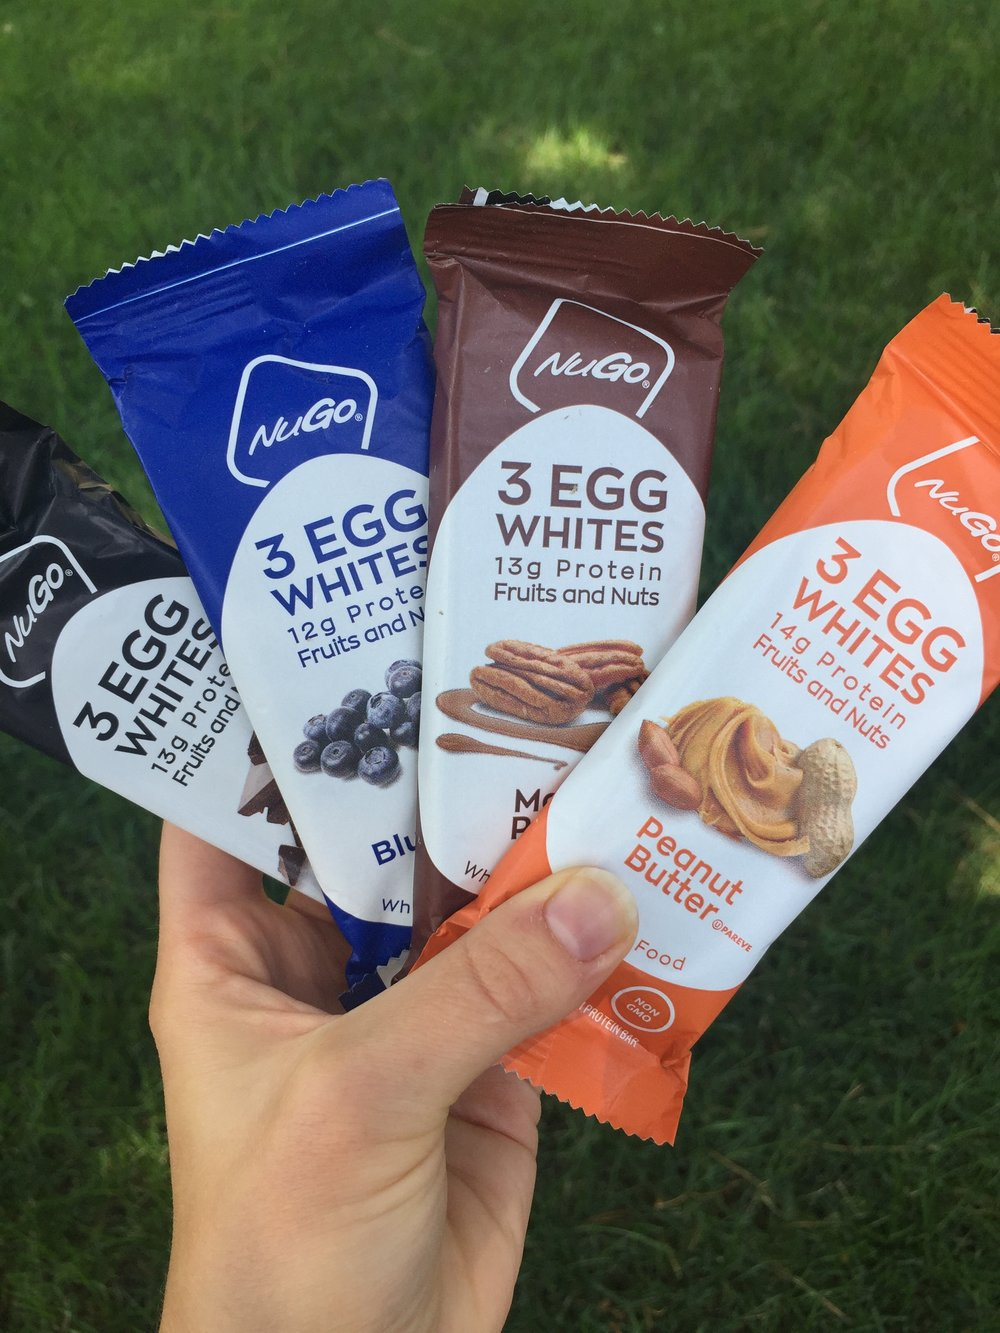 Nugo nutrition bars with egg whites